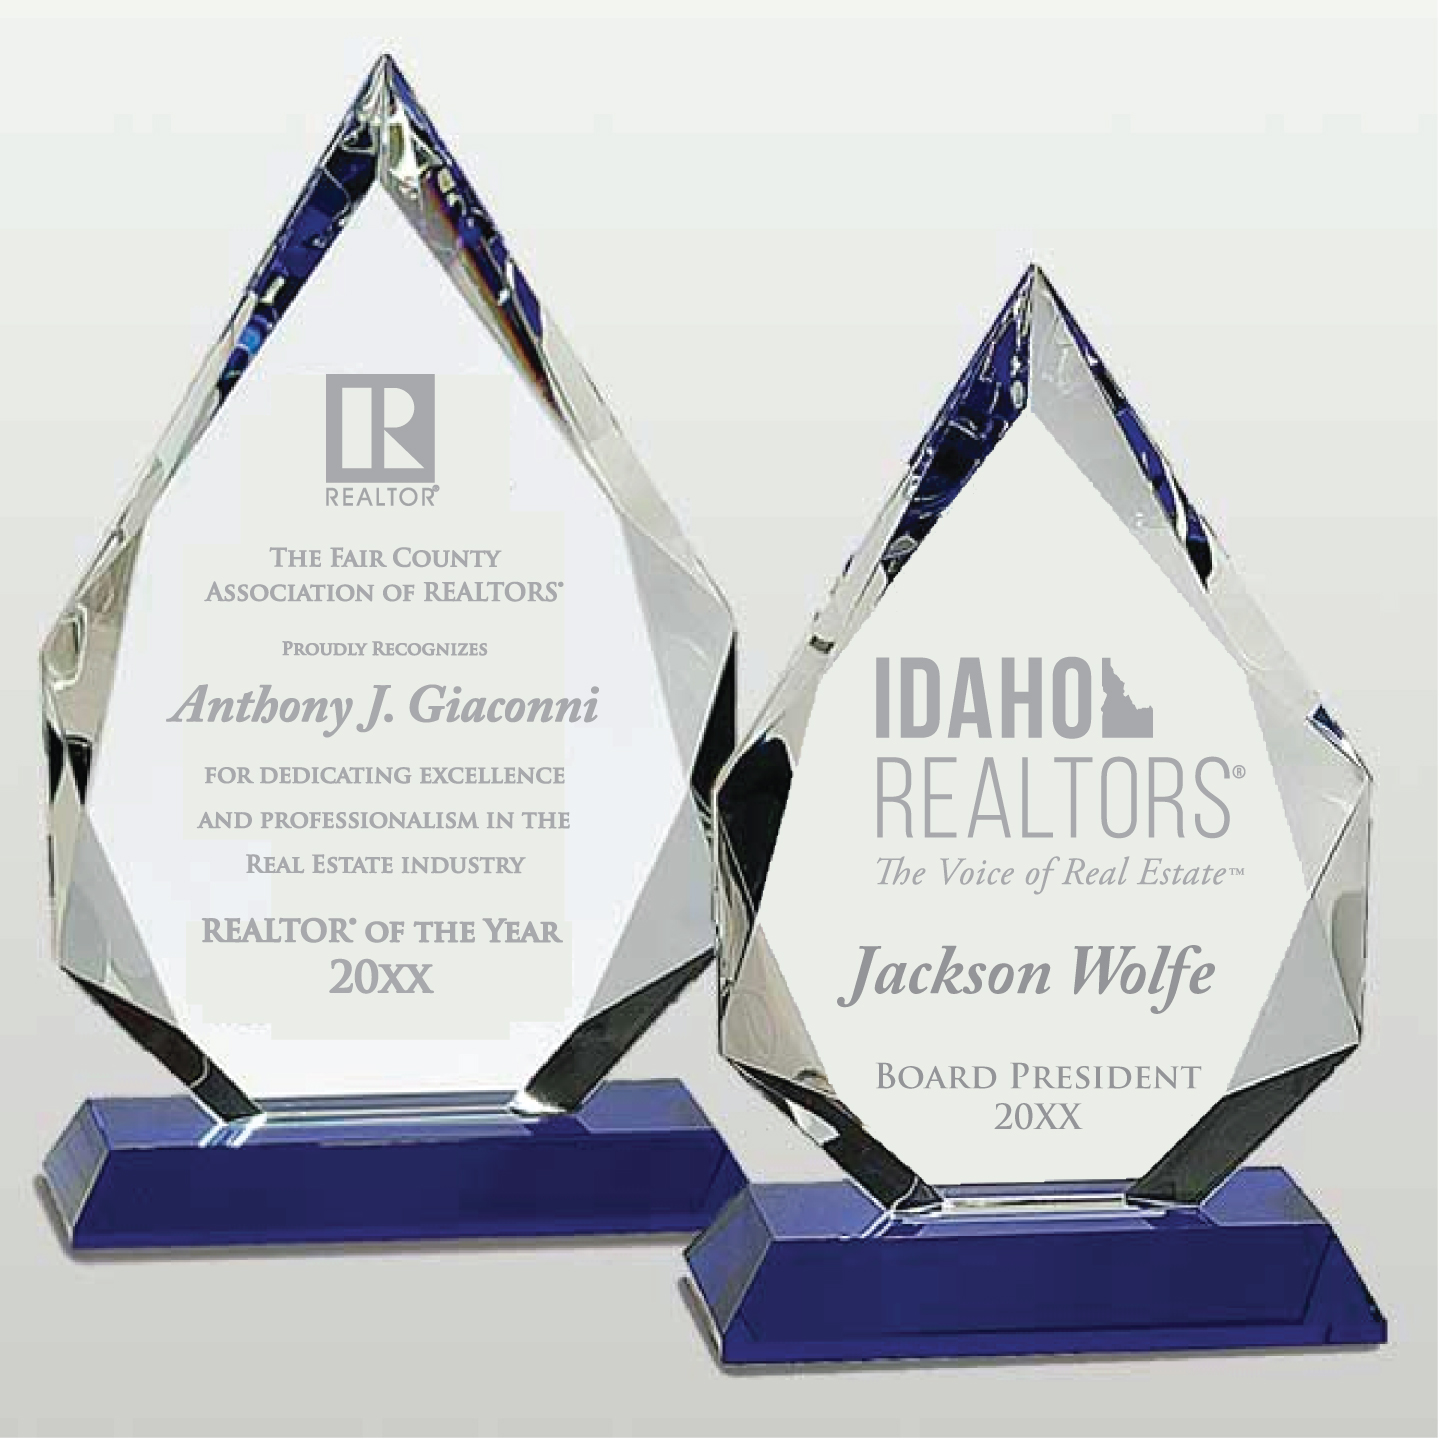 Crystal Diamond on Pedestal Awards,Award,Plaque,Plaques,Crystal,Glass